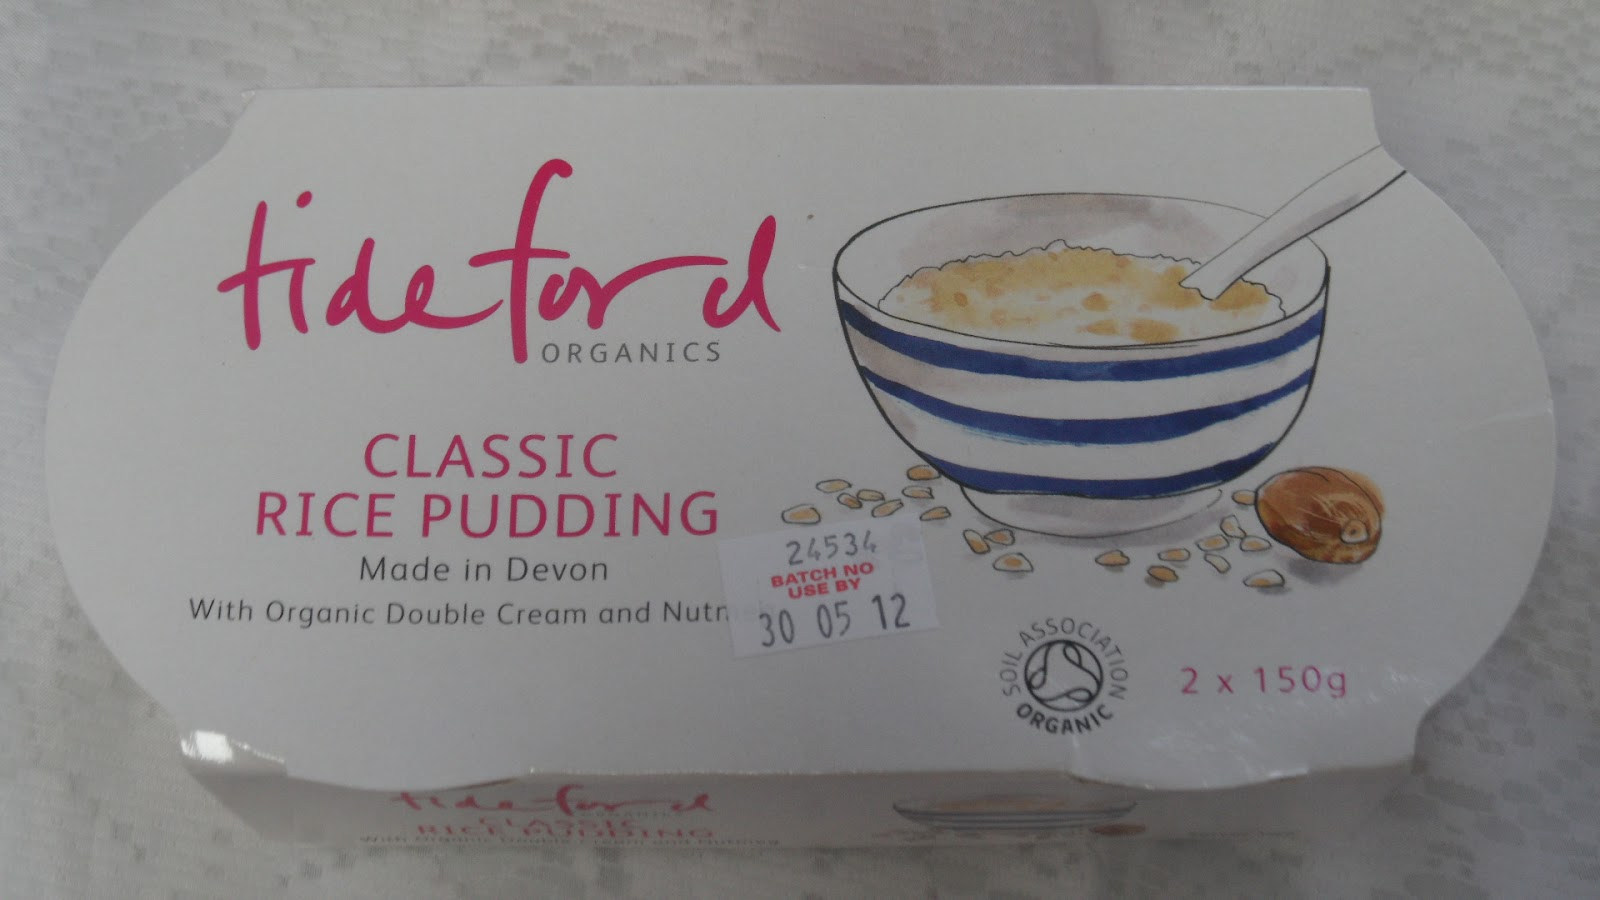 ... rice pudding (Tideford Organics Classic rice pudding review